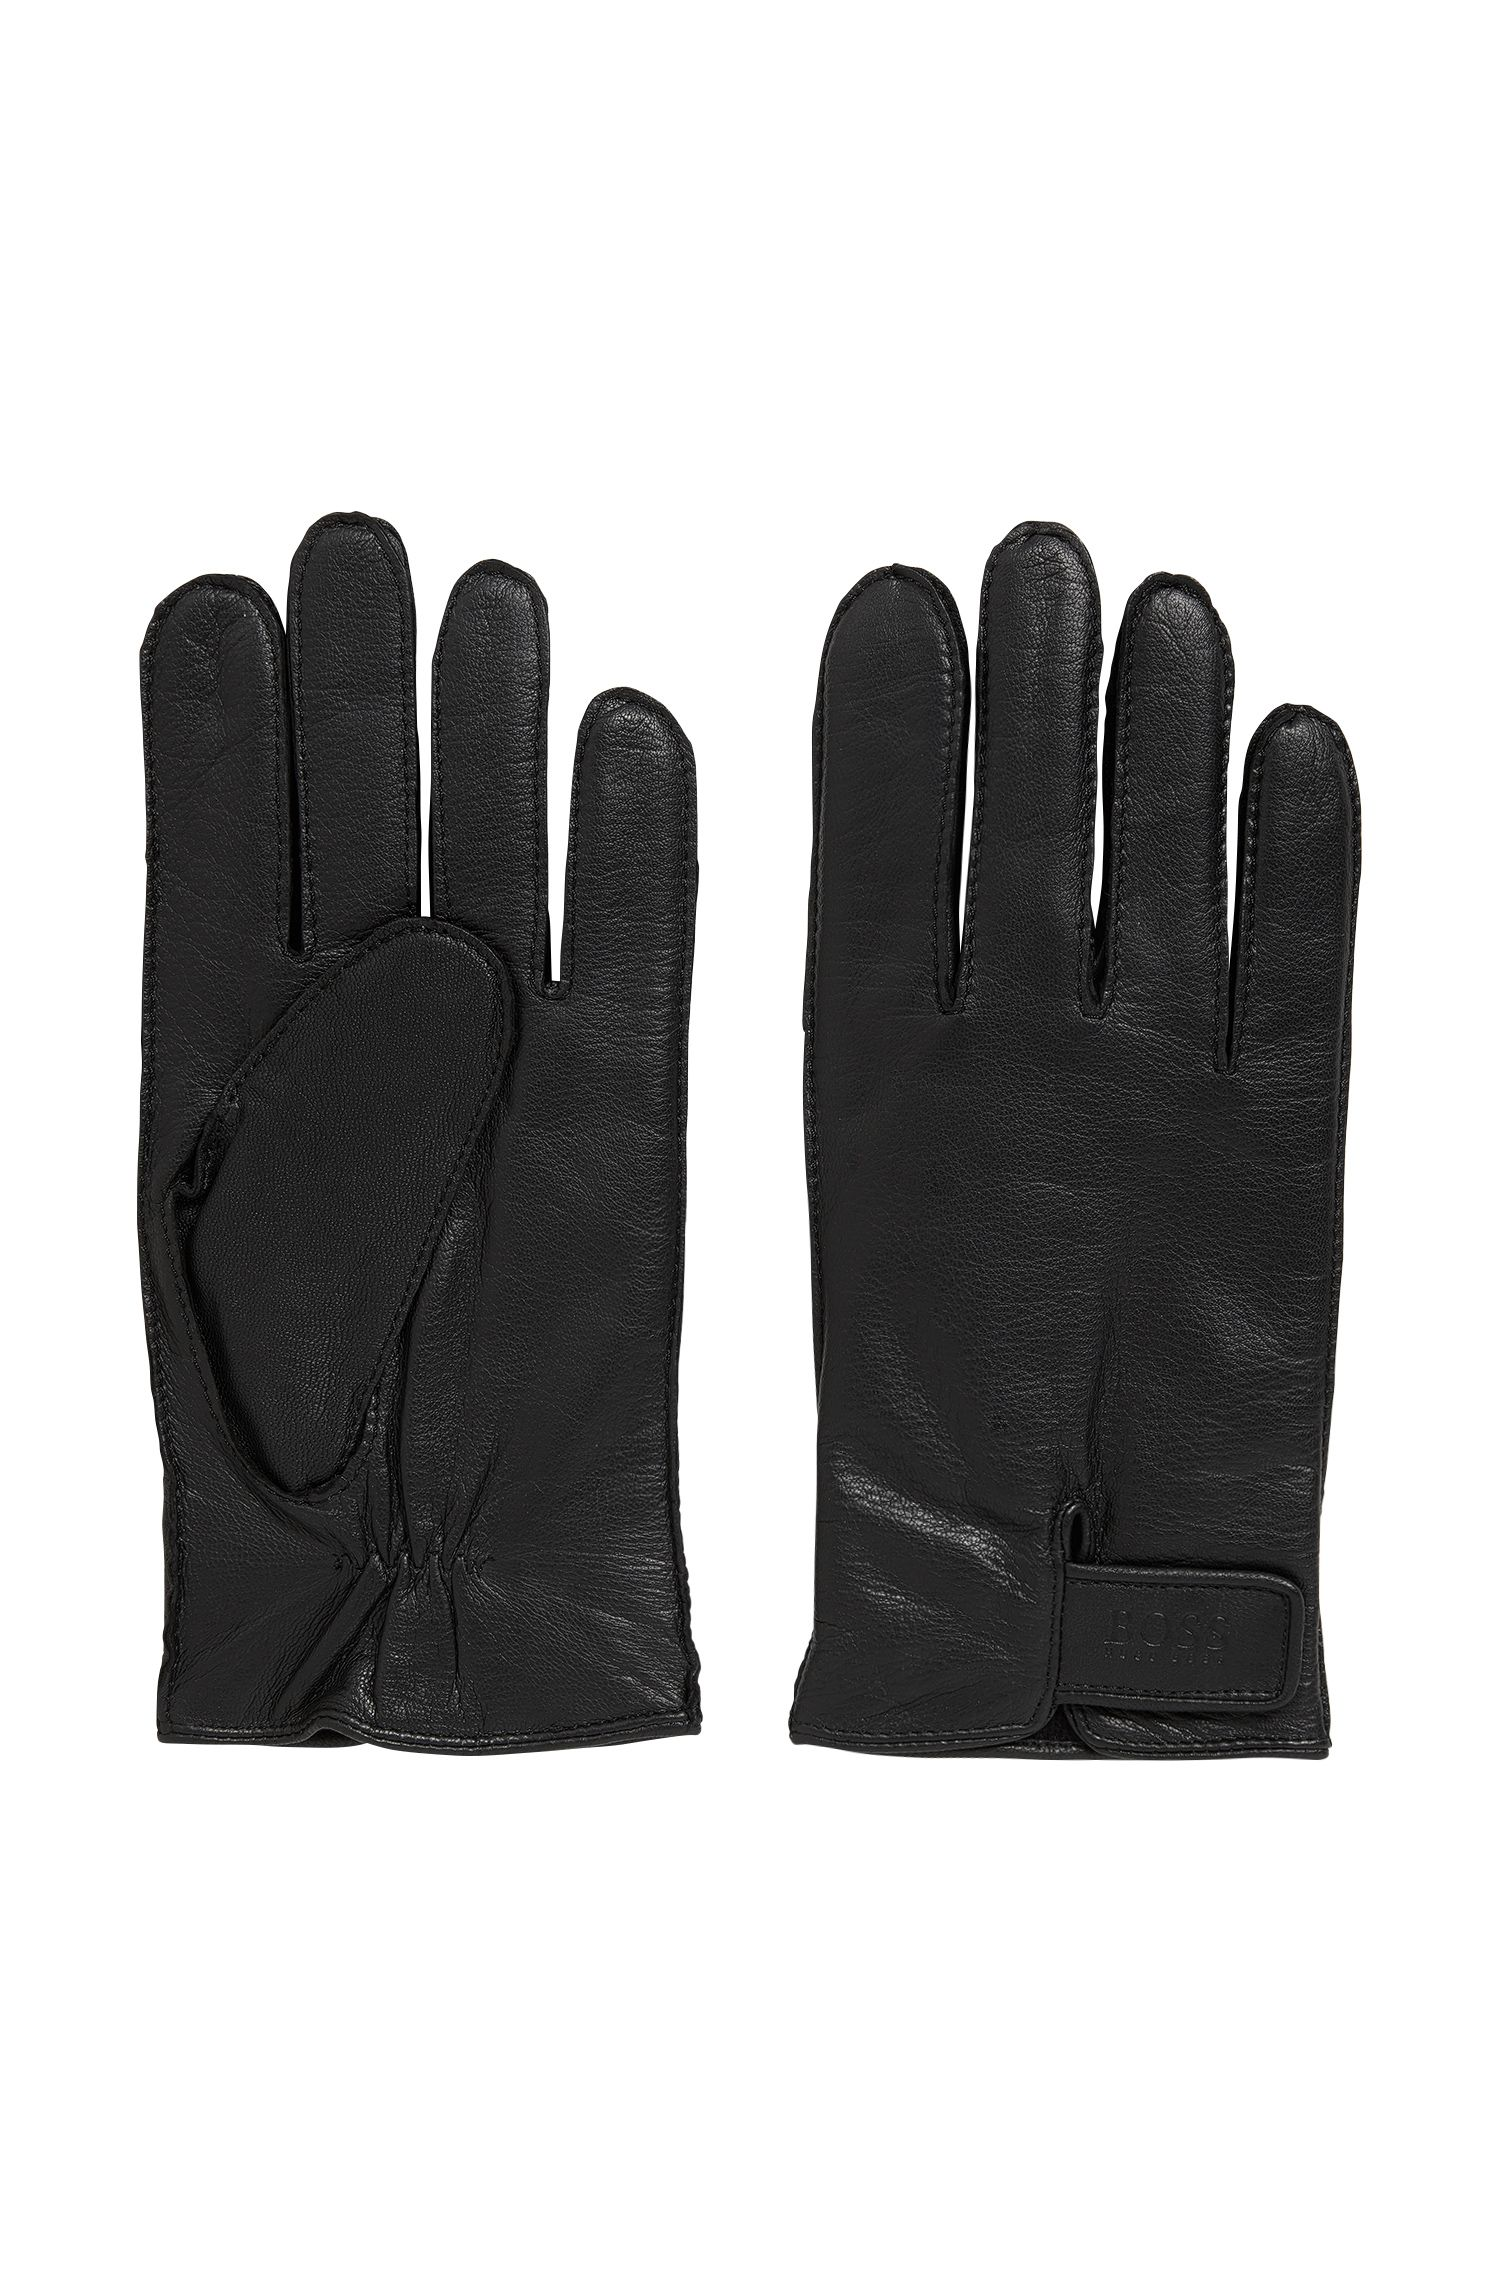 Nappa leather gloves with adjustable straps